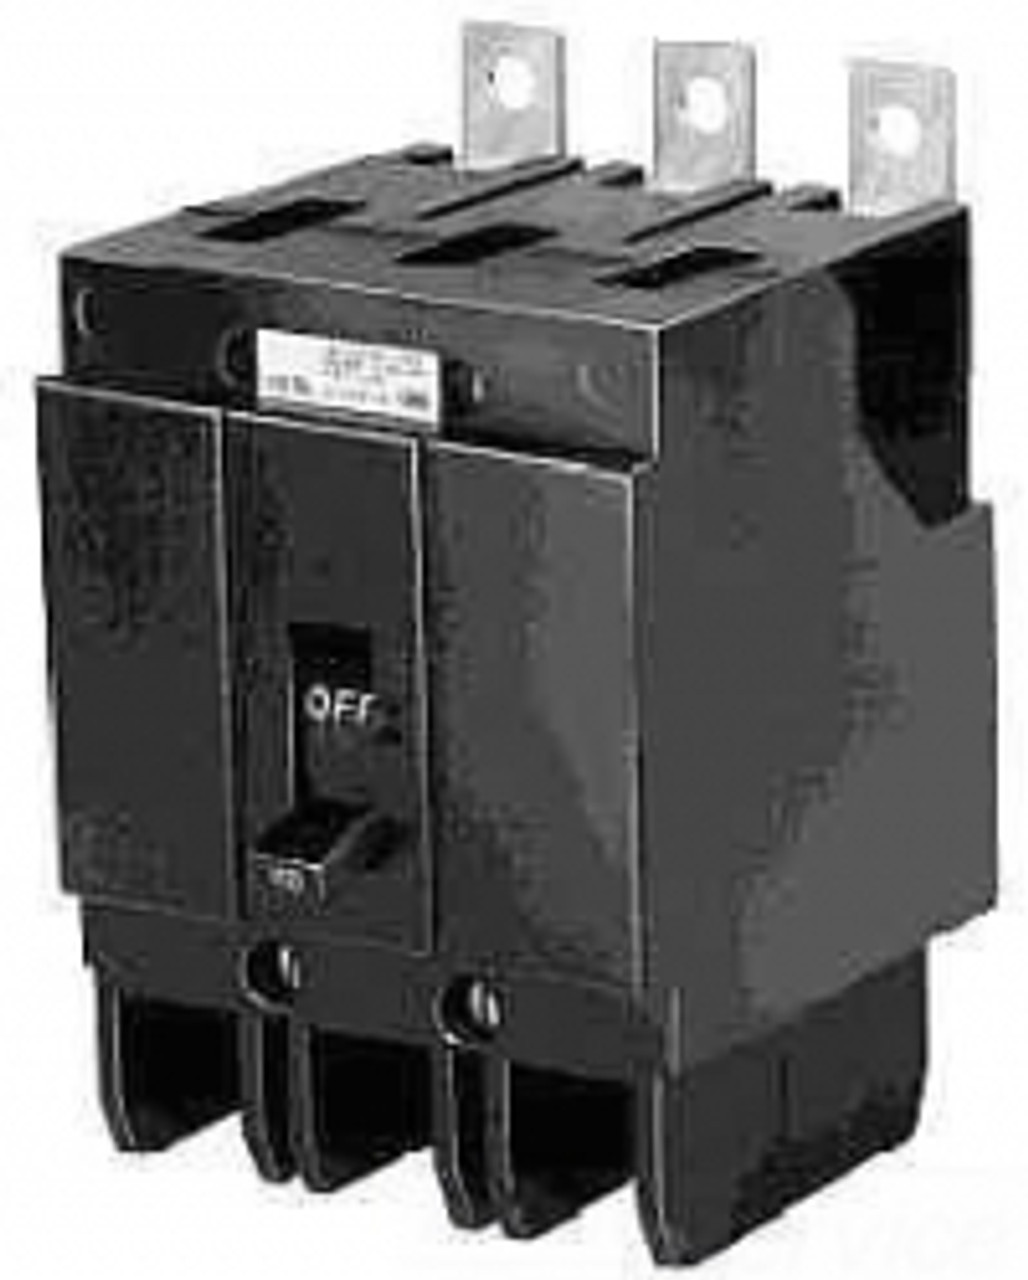 Cutler Hammer GHB3050 3 Pole 50 Amp 480VAC Circuit Breaker - New Pullout